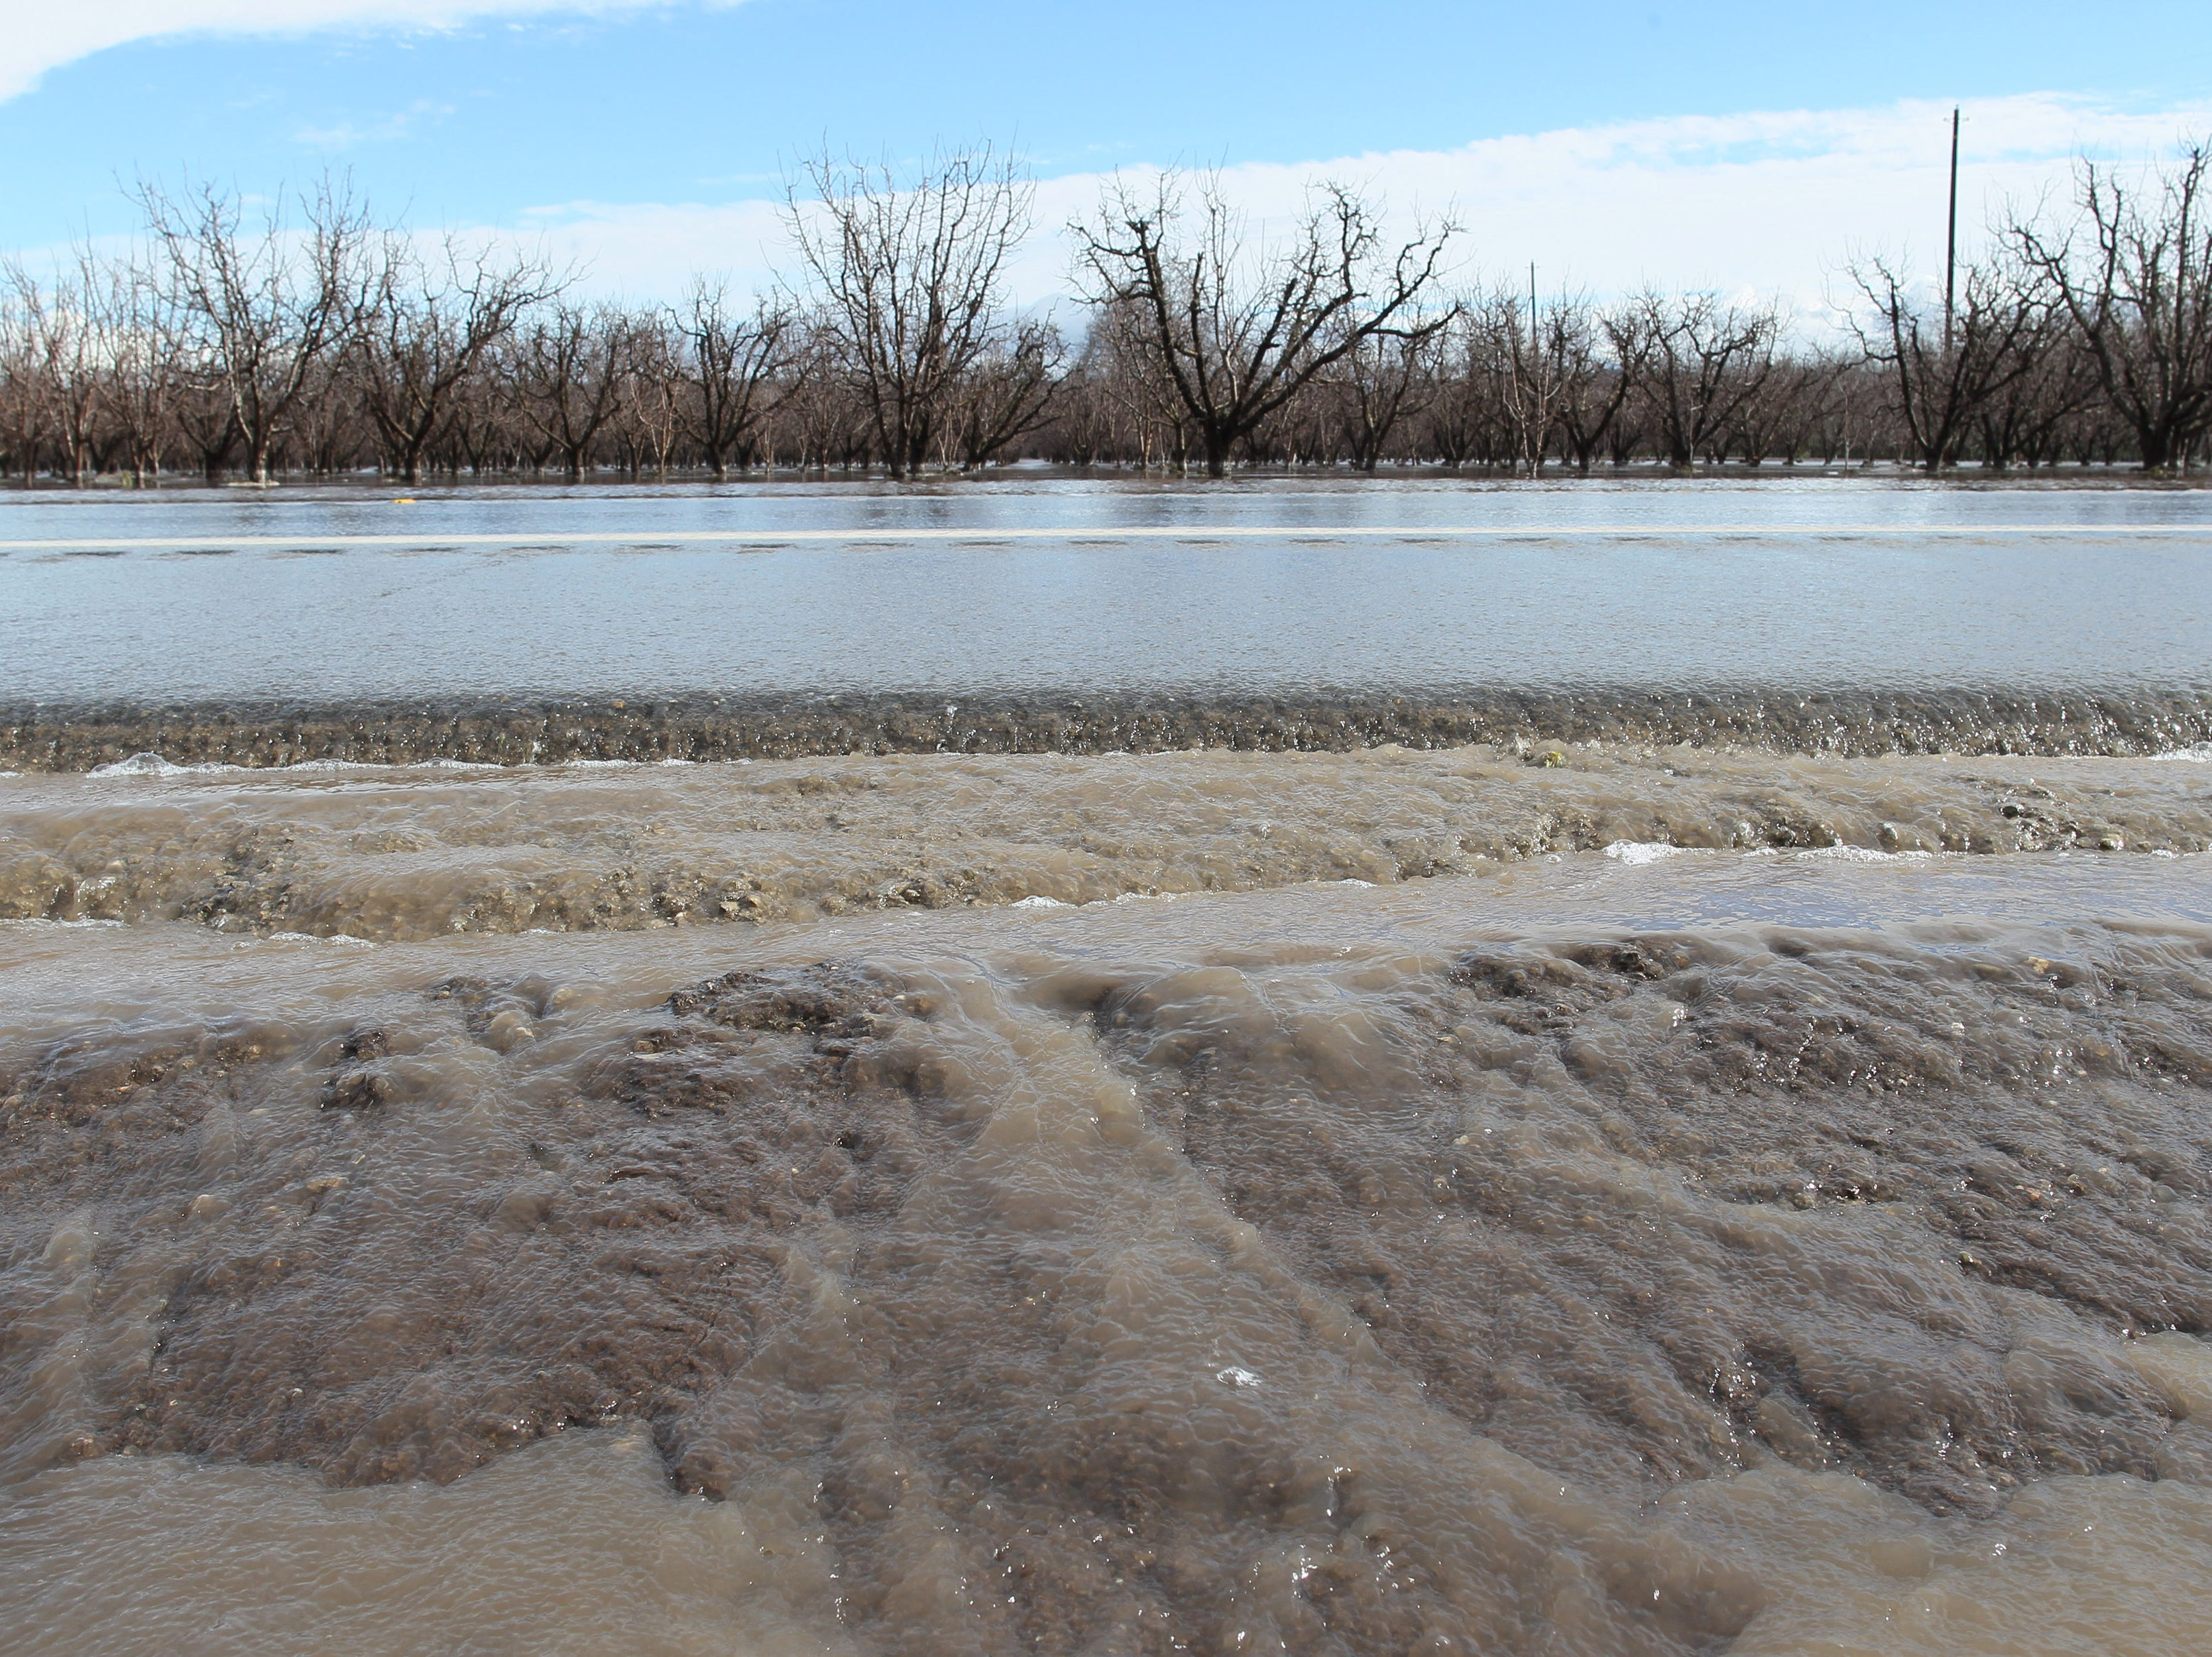 Water runs across the roadway on Hwy. 99 east of Red Bluff as seen on Thursday morning.